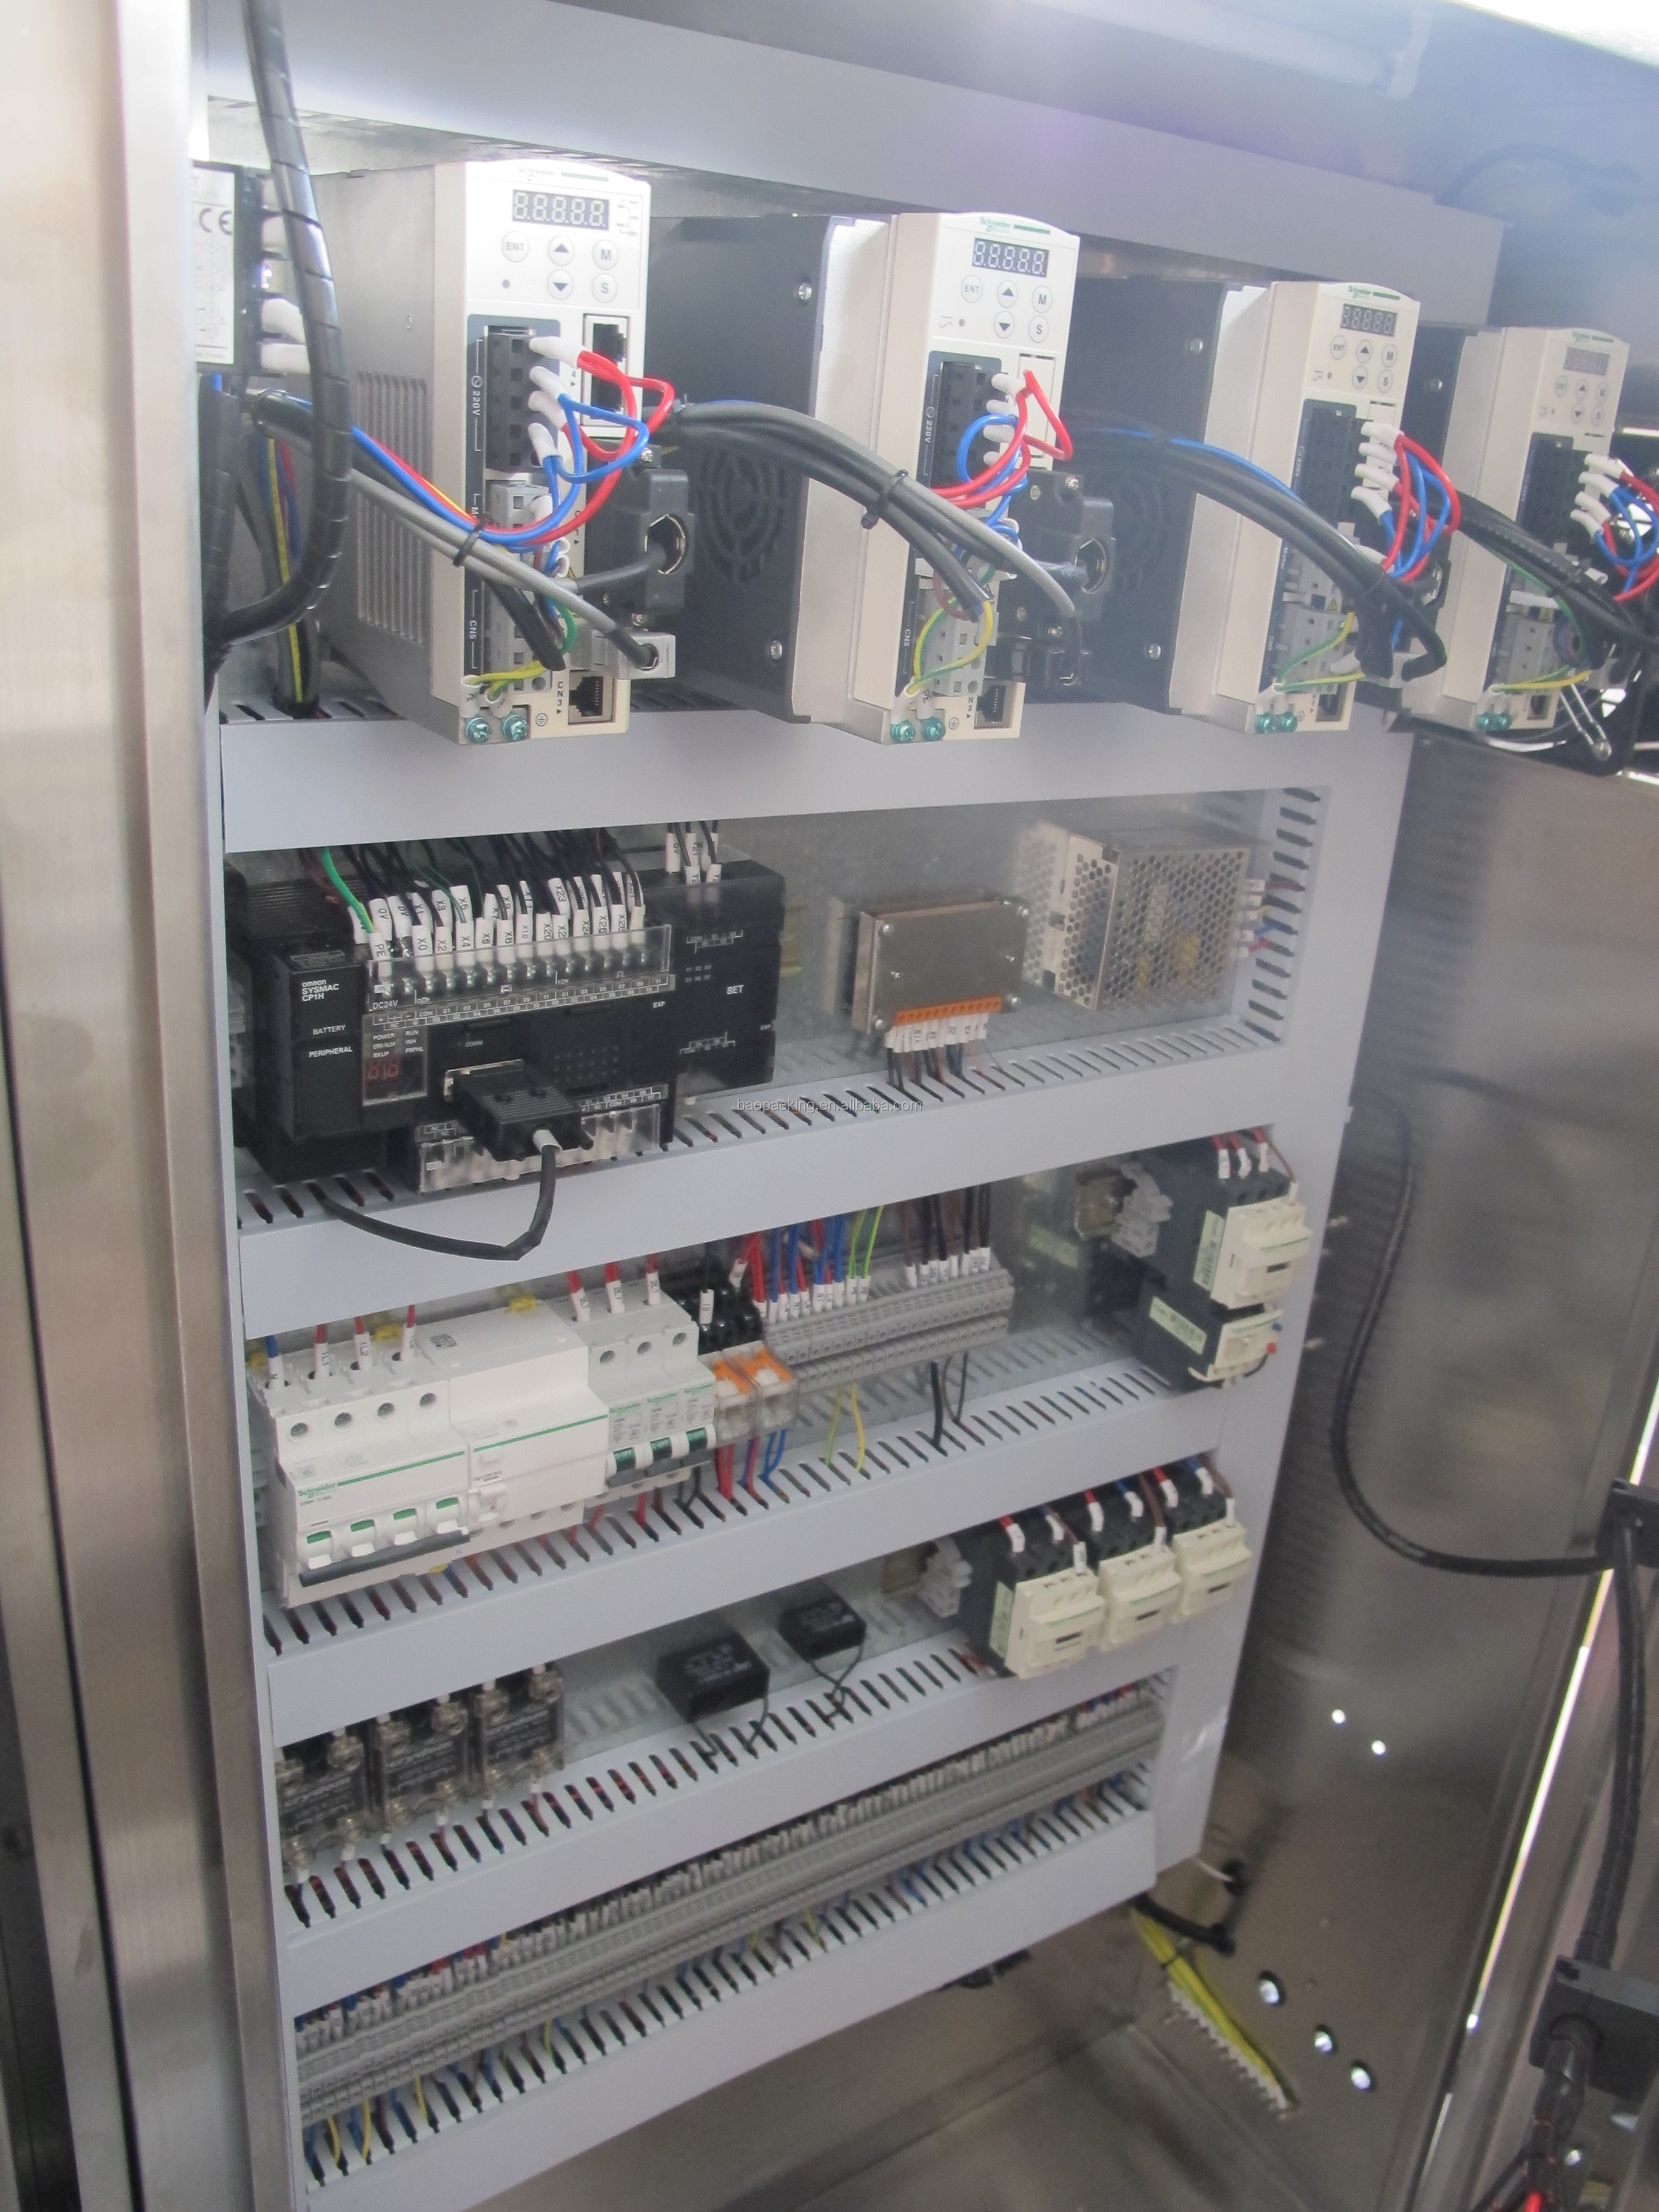 Automatic packing machine from baopack for packing sugar, beans and chips